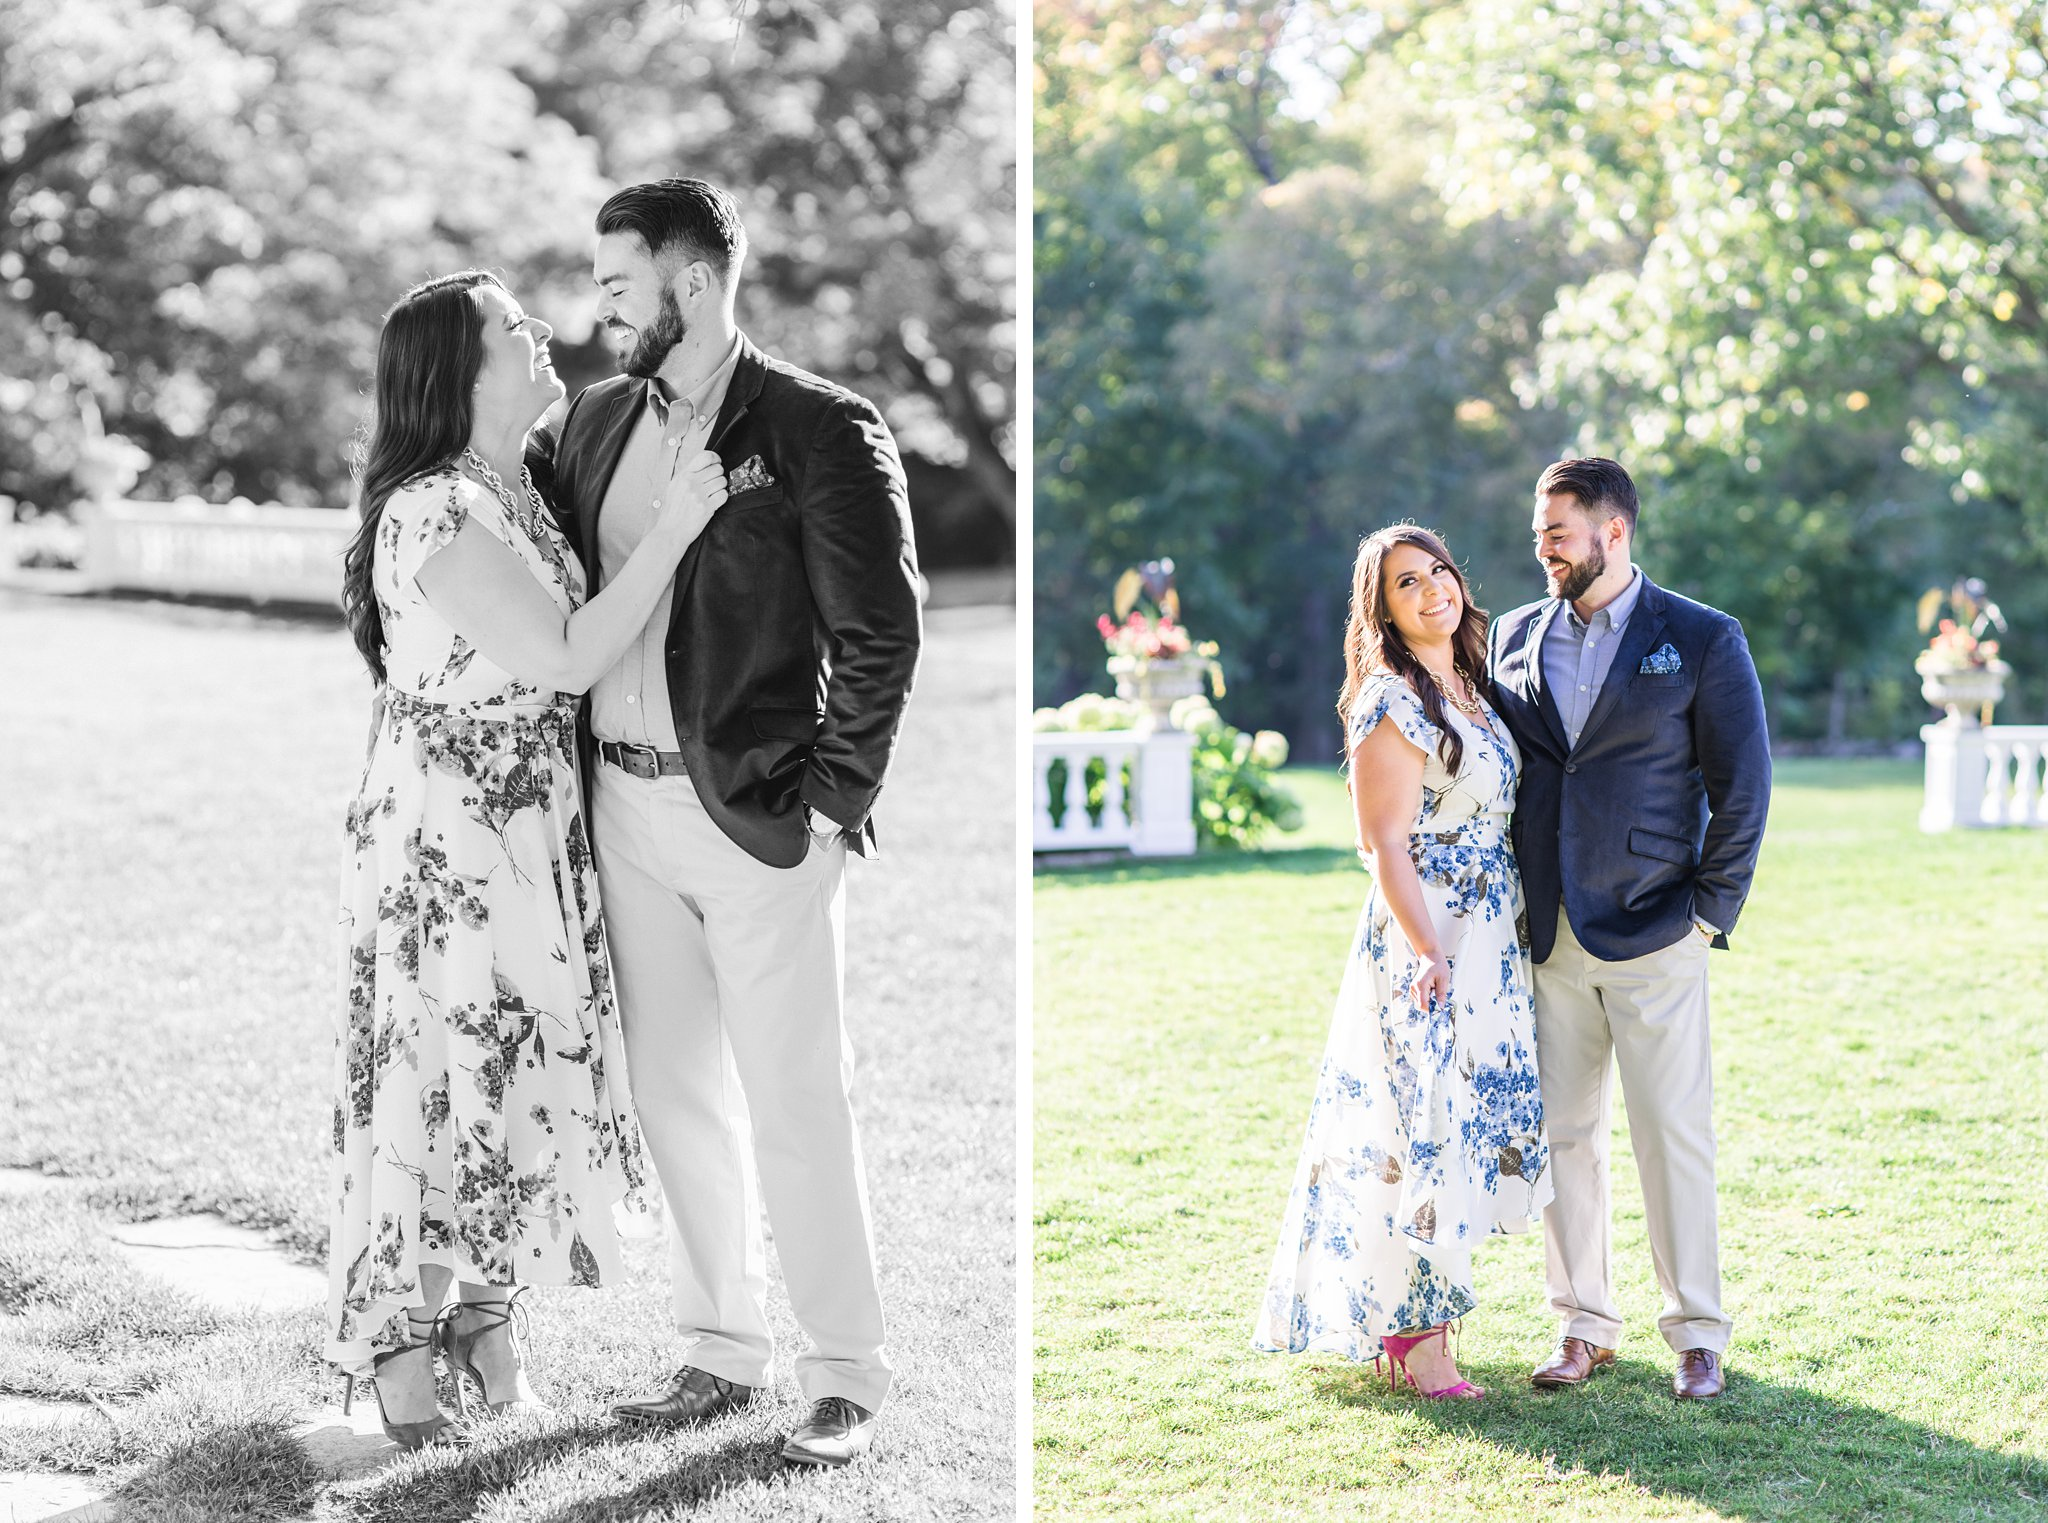 Front lawn of MKE, Mackenzie King Estate Engagement Photos by Amy Pinder Photography